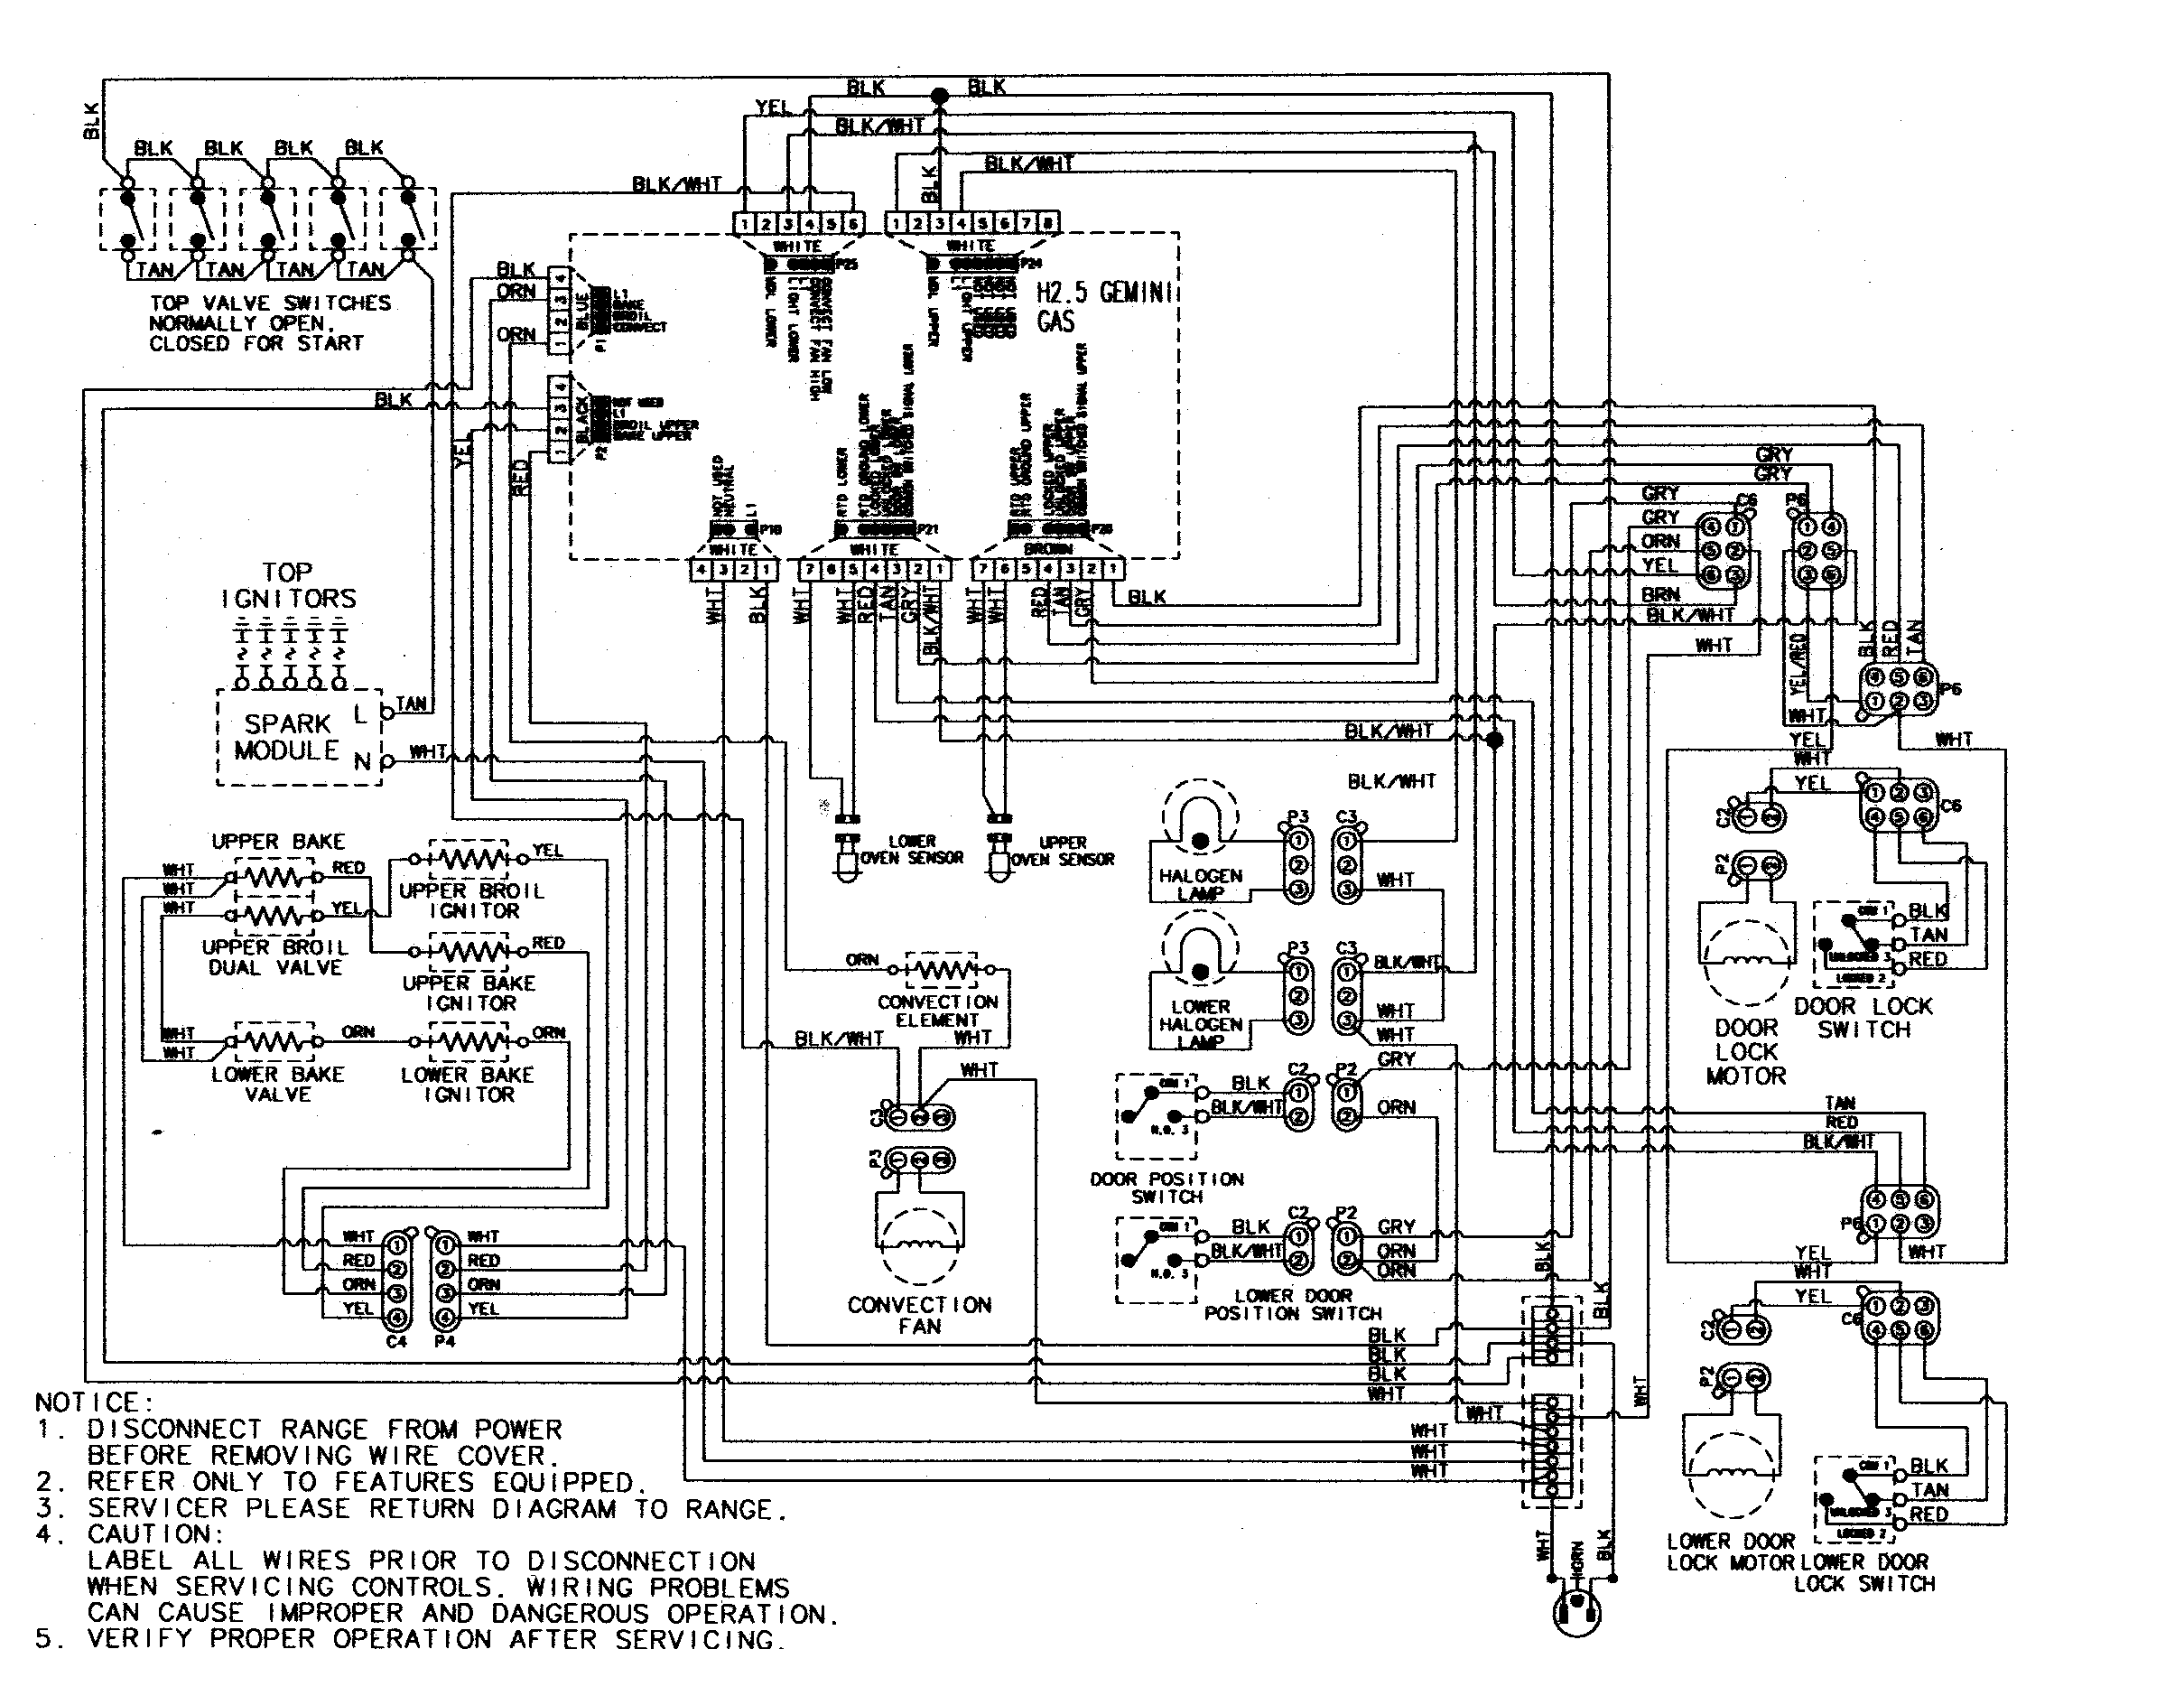 Oven Igniter Wiring Diagram Archive Of Automotive Pro Comp Harness Maytag Mgr6875adb Gemini 30 Double Freestanding Gas Range Rh Appliancetimers Ca